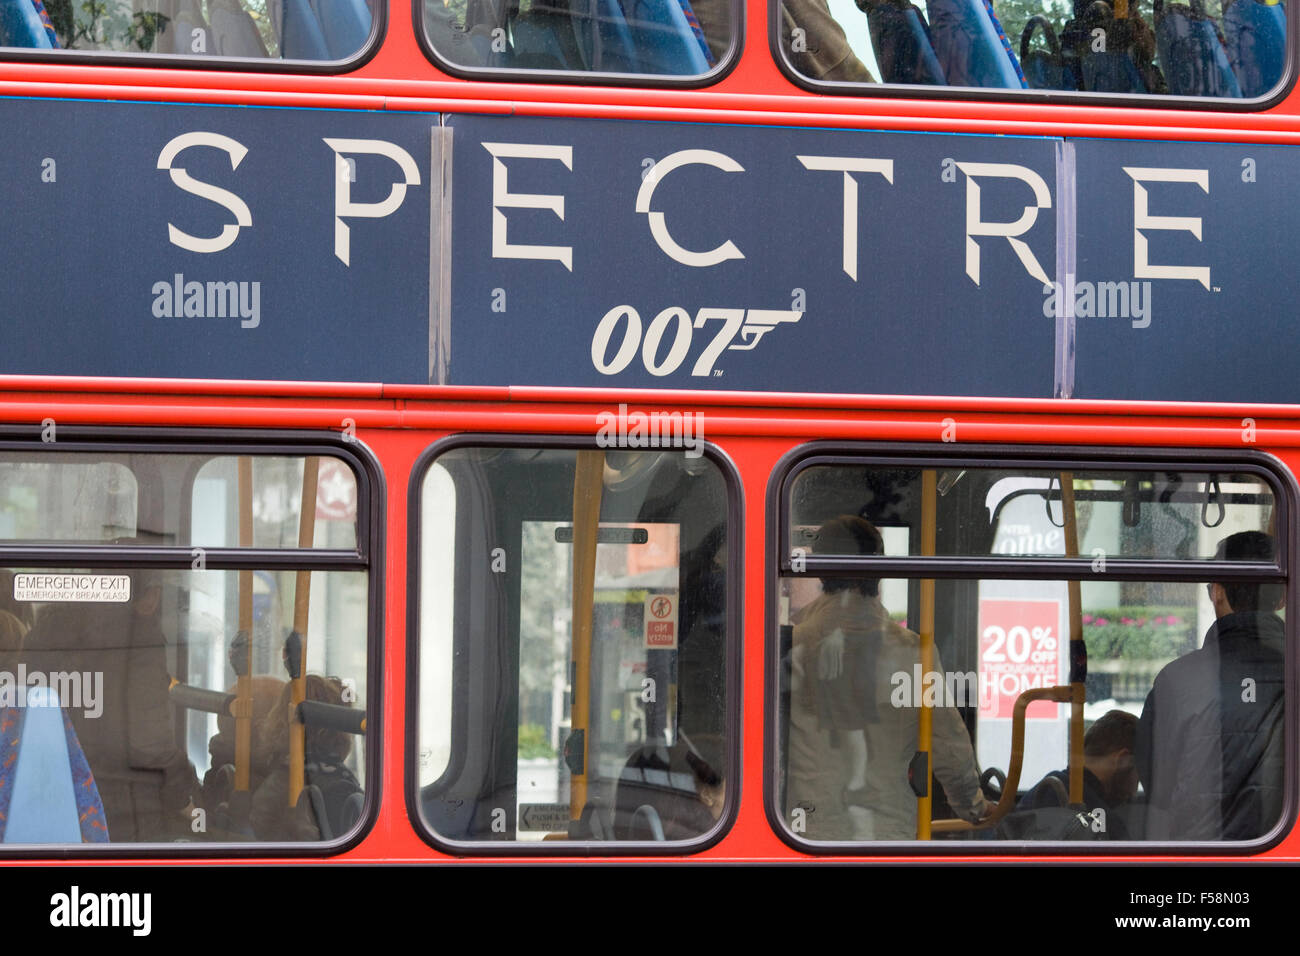 The new James bond movie spectre advertised on a London bus - Stock Image